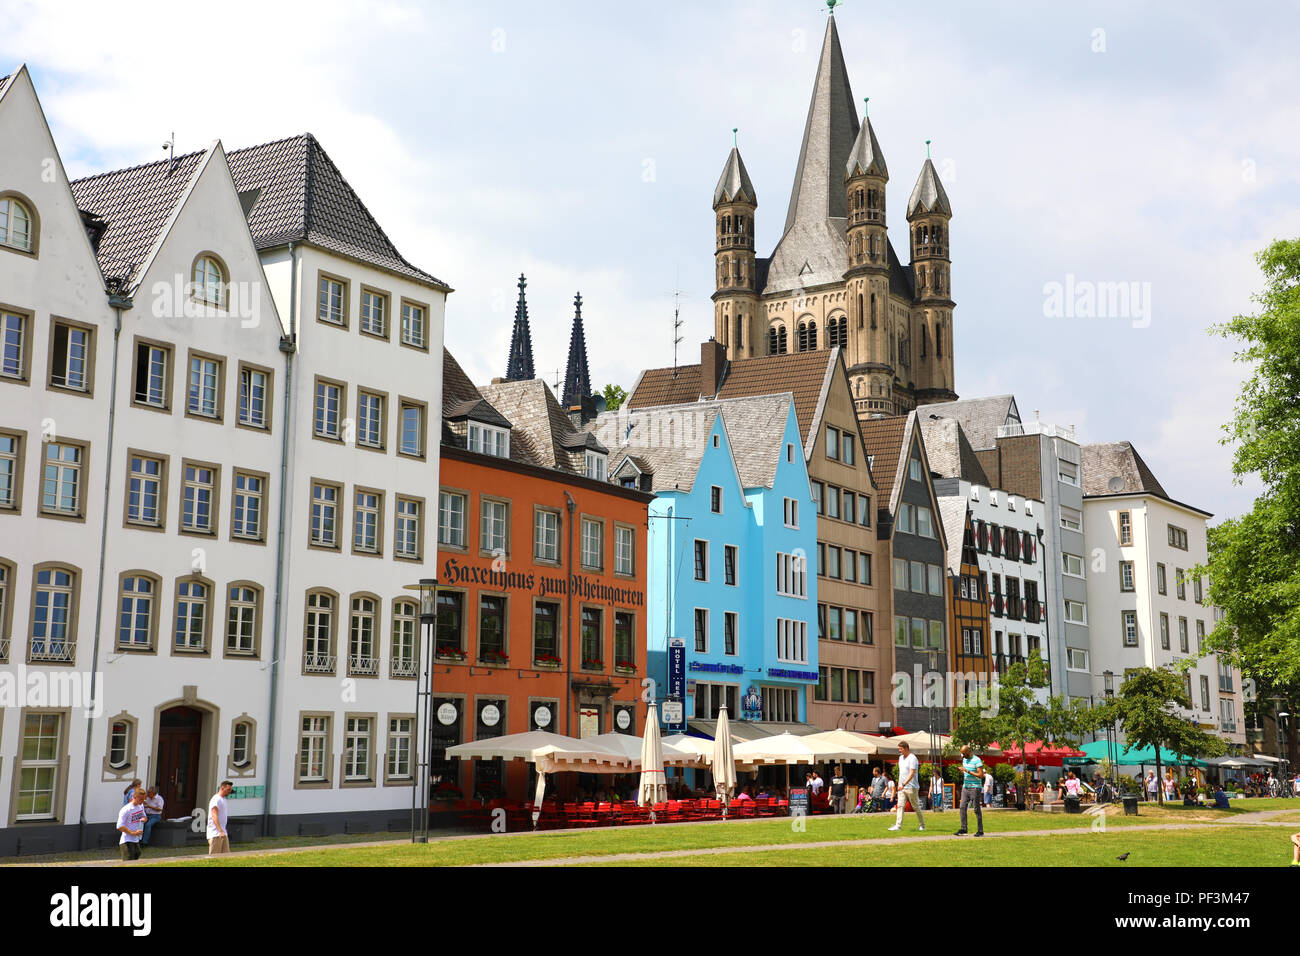 COLOGNE, GERMANY - MAY 31, 2018: houses and park in Cologne, Germany. Many of them are colourful, they are facing a public park with green grass and s - Stock Image